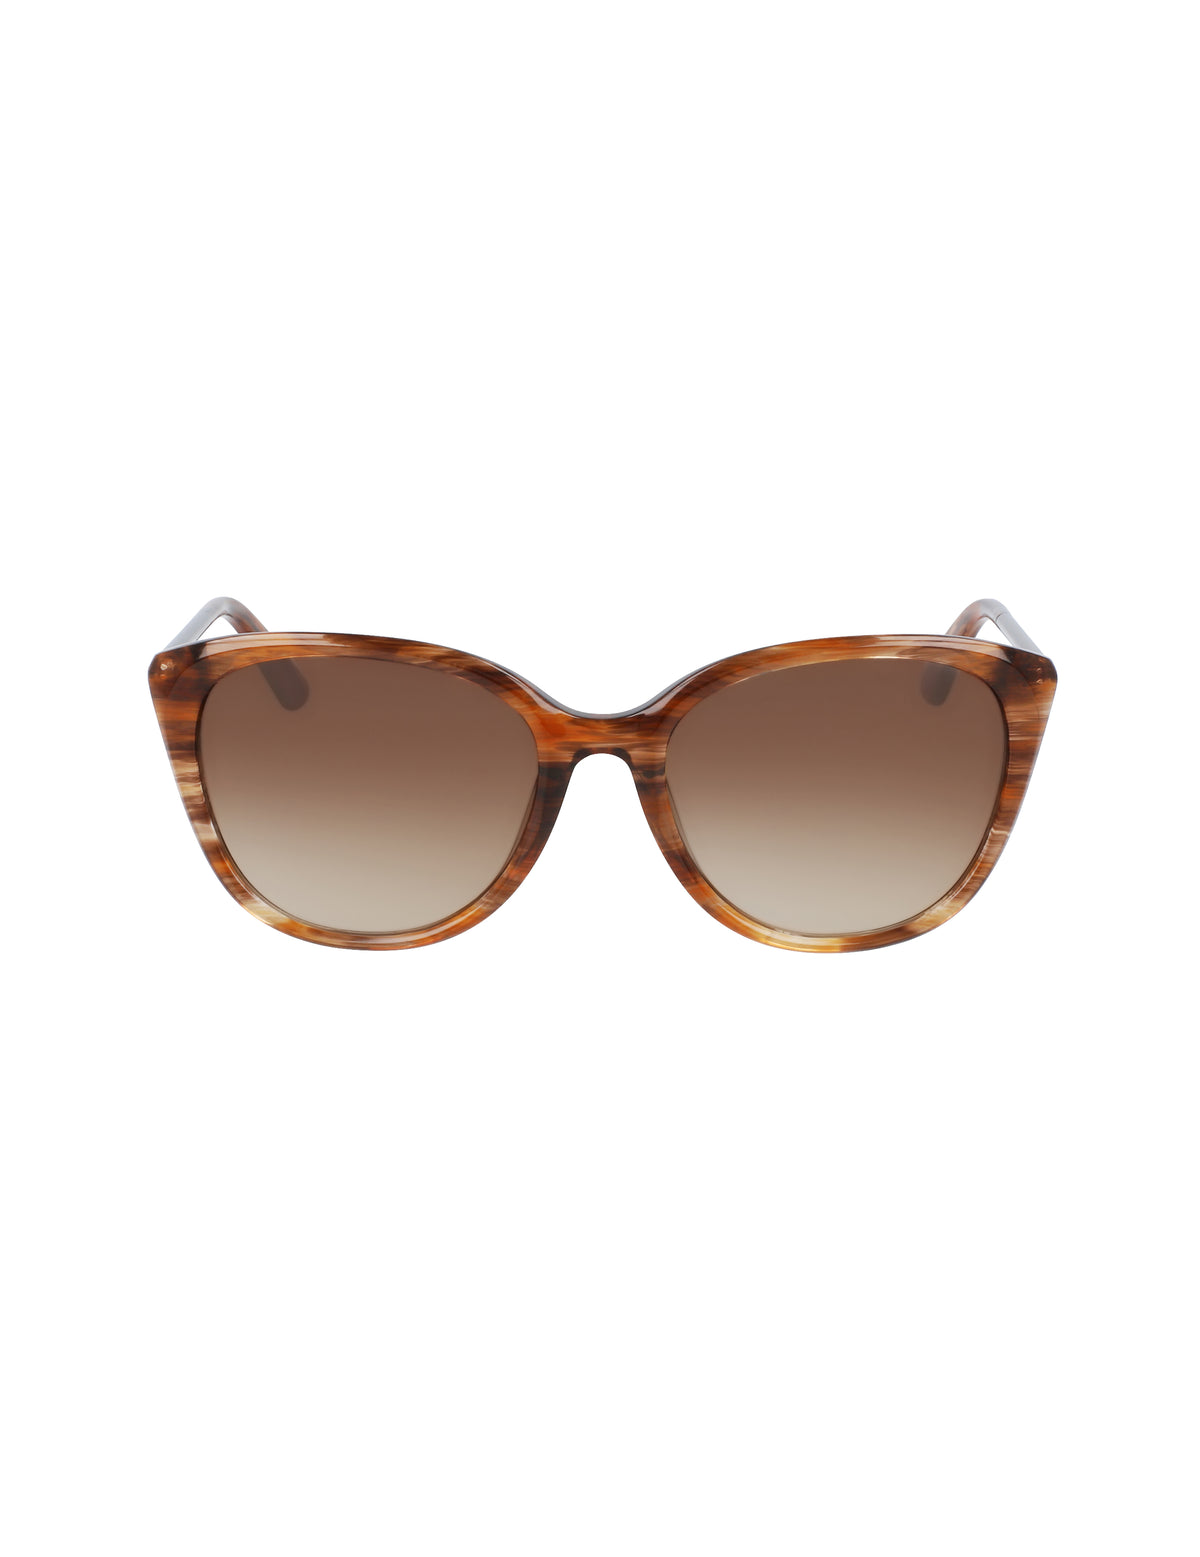 Mocha Cateye Combo Sunglasses